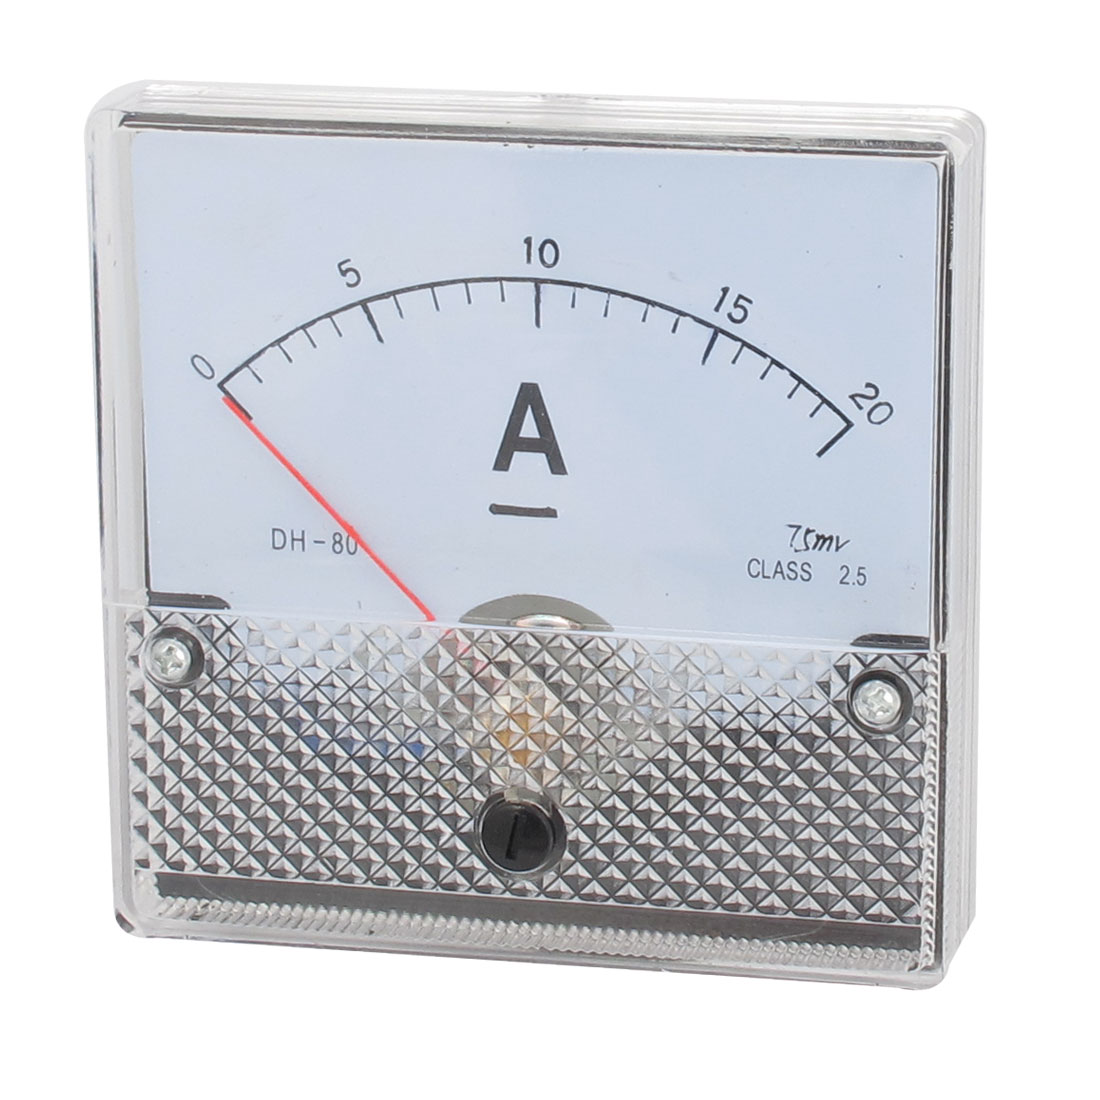 DH-80 DC0-20A Class 2.5 Accuracy Clear Square Panel Mounted Analog Ammeter Ampere Meter